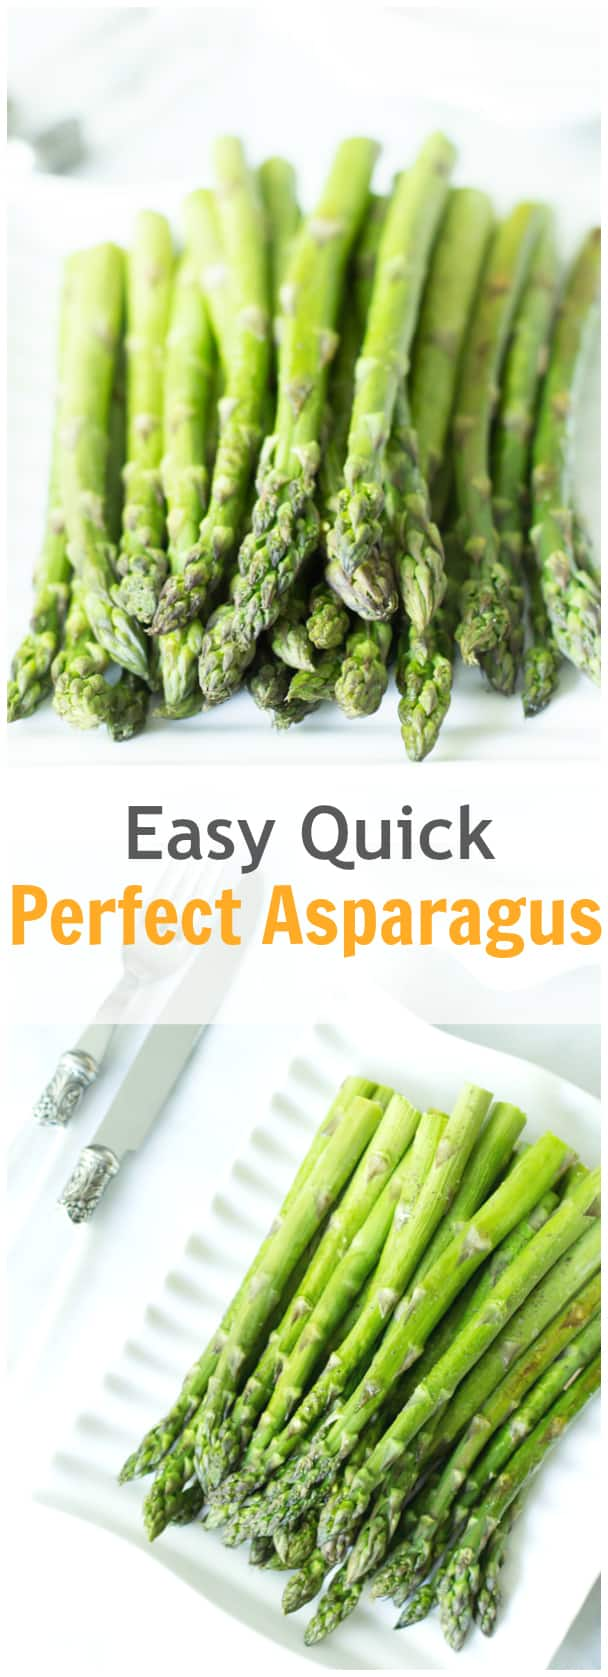 Easy Quick Perfect Asparagus